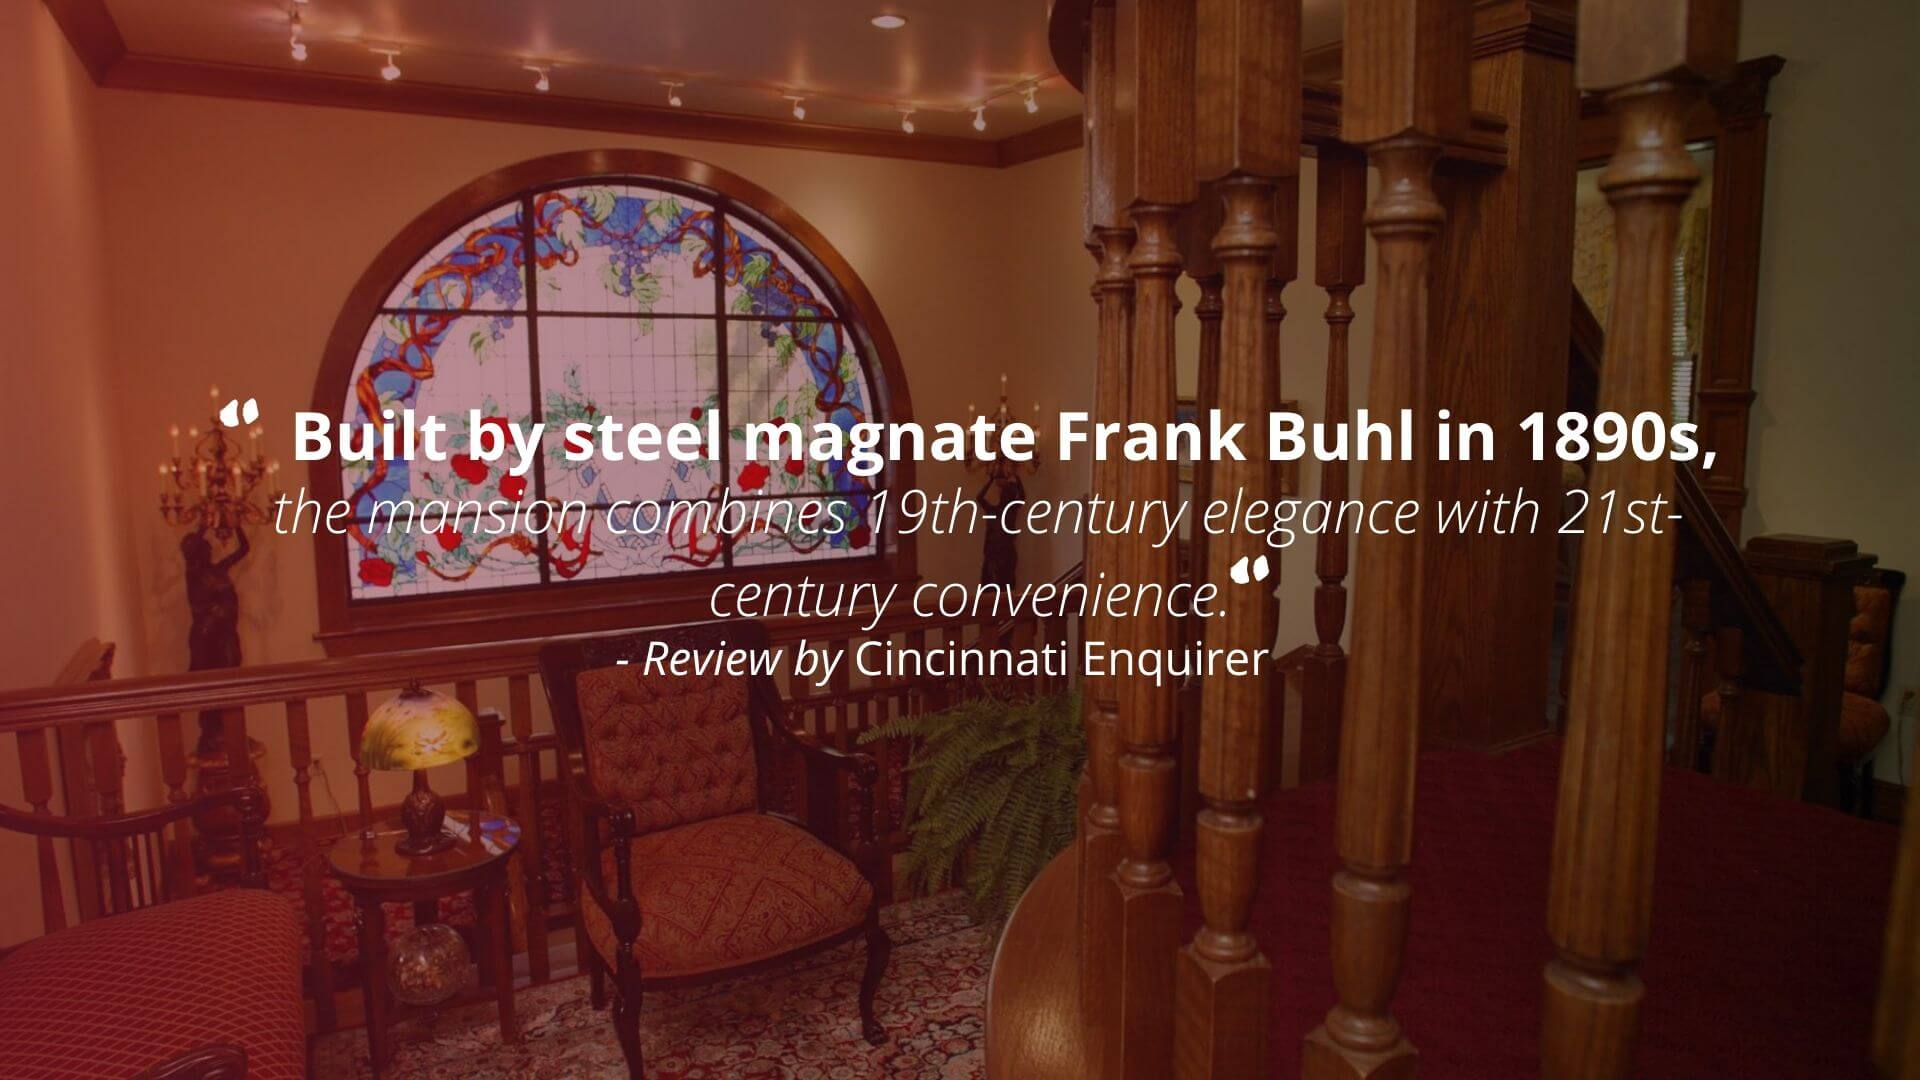 """Built by steel magnate Frank Buhl in 1890s, the mansion combines 19th-century elegance with 21st-century convenience."" - Review by Cincinnati Enquirer"